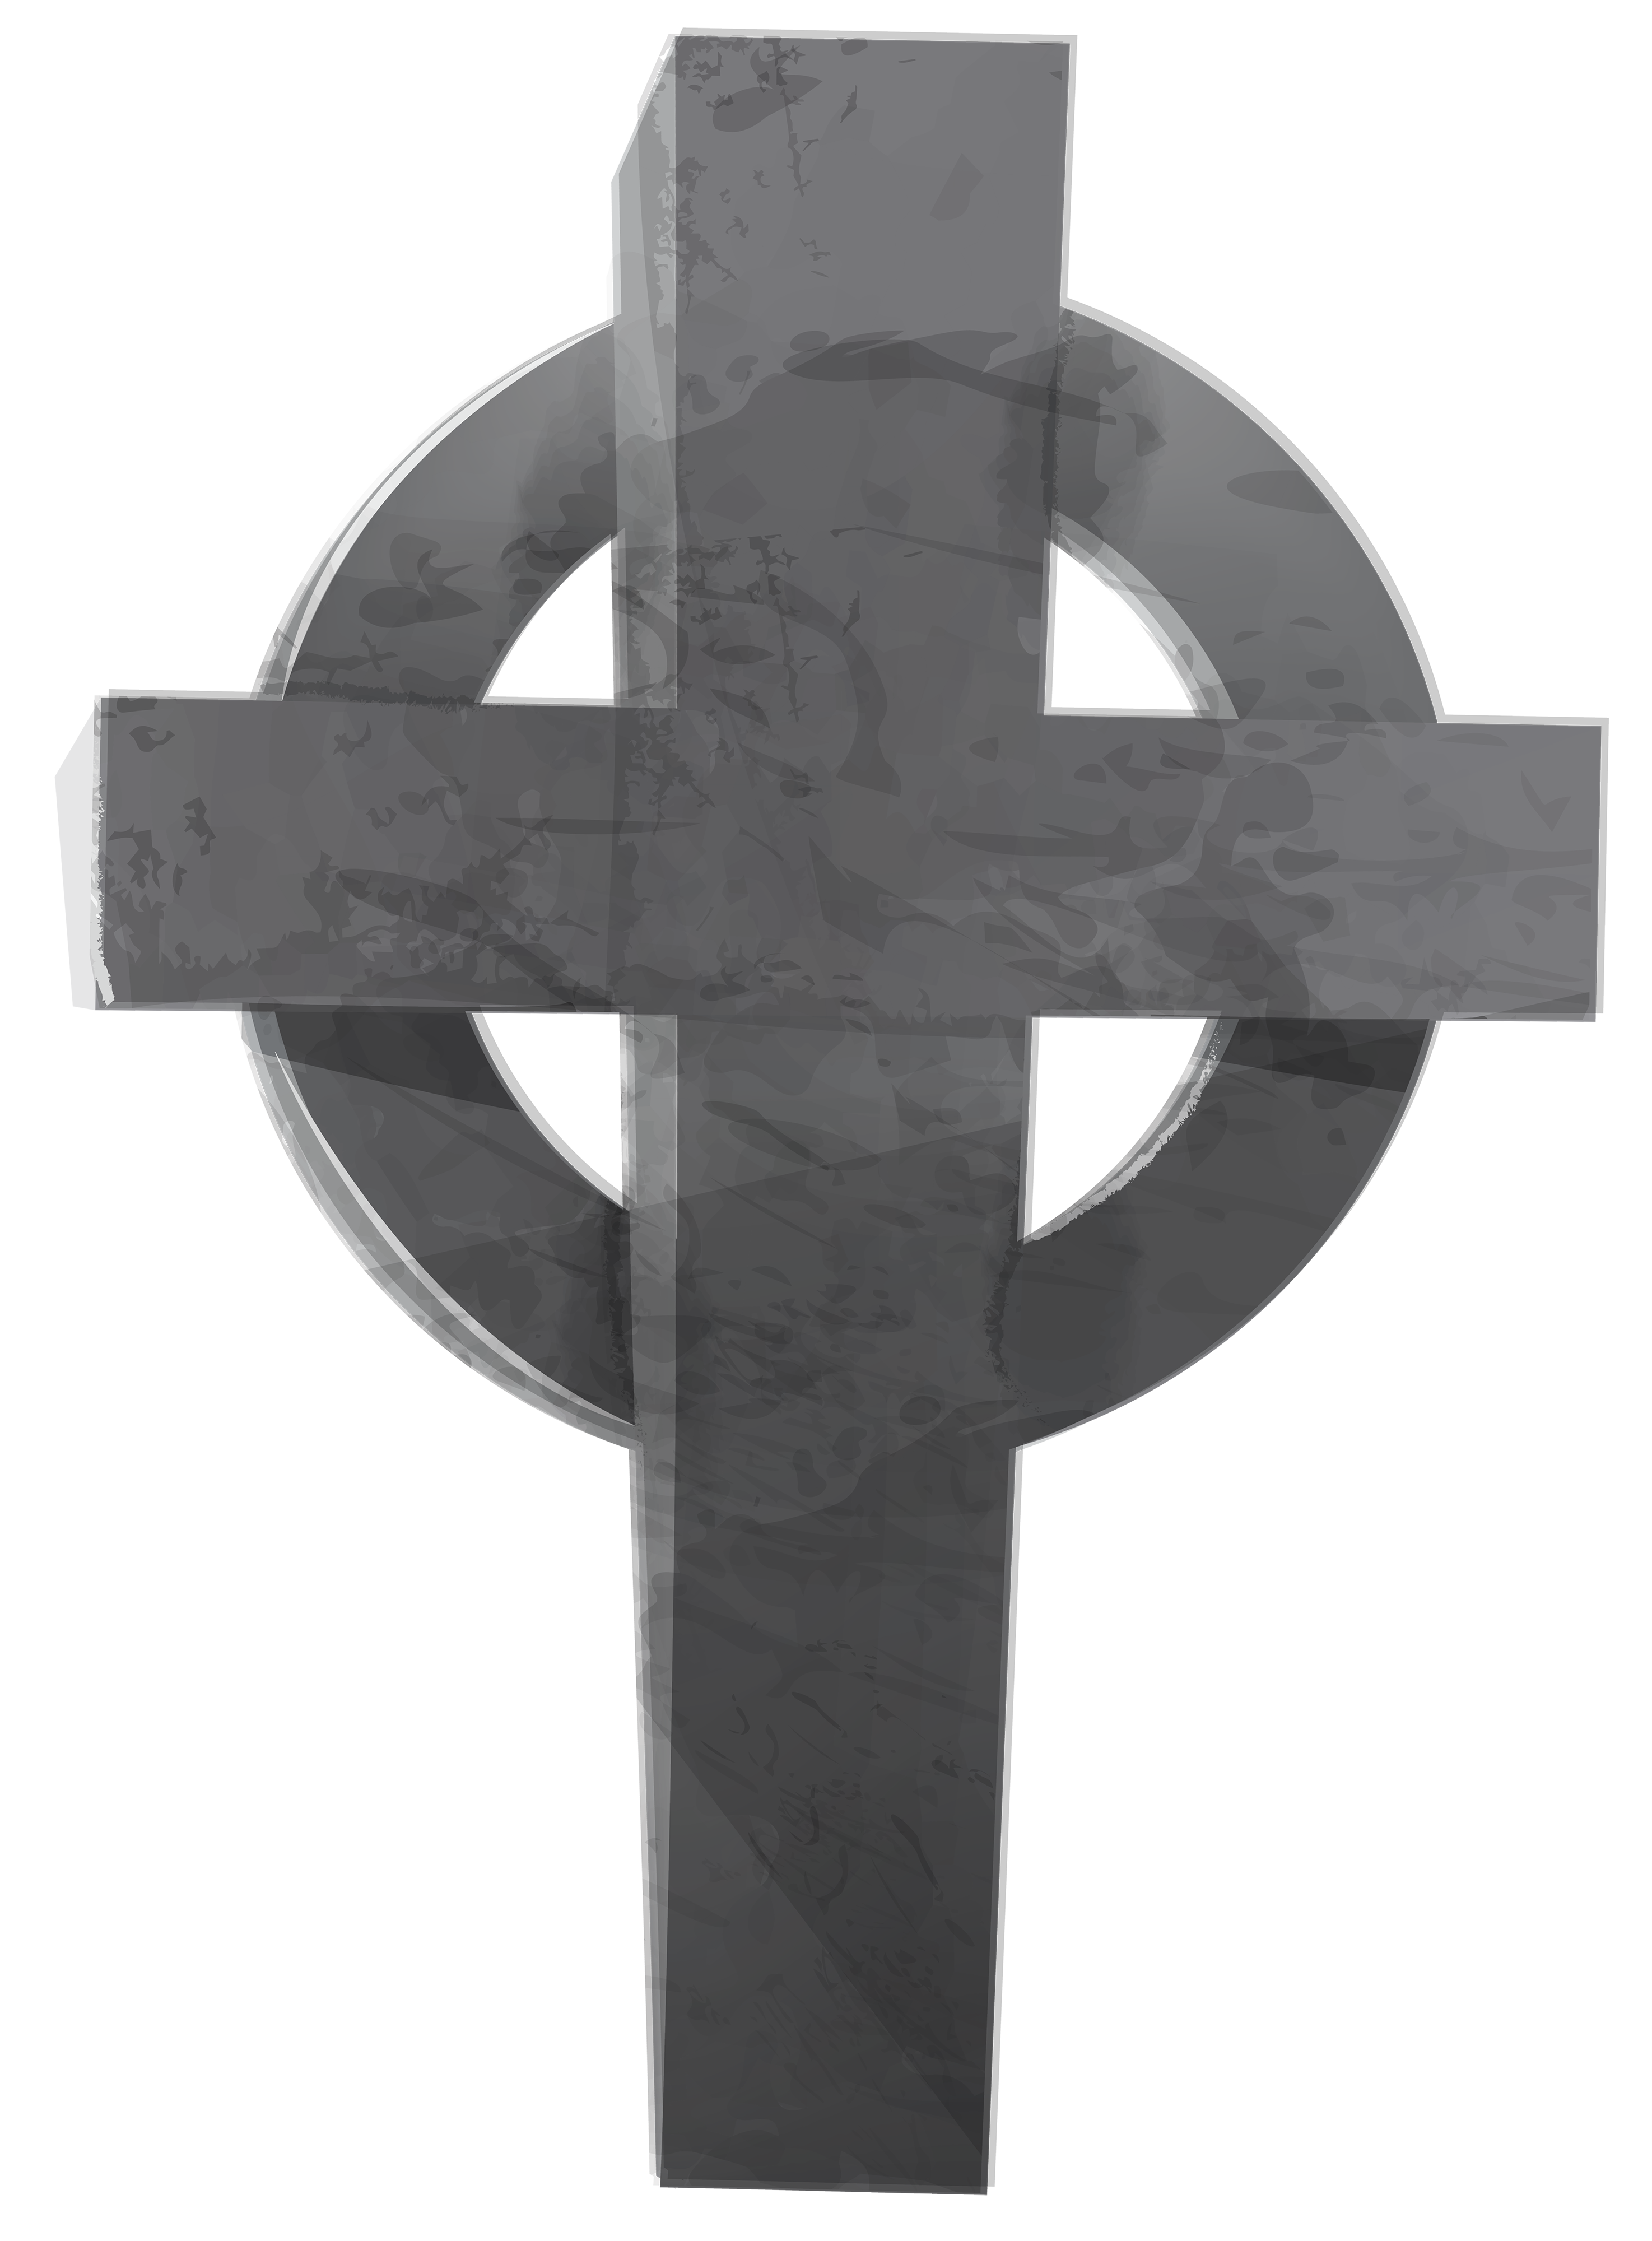 Tombstone clipart tombstone cross Free FreeClipart pw Cross Clipart